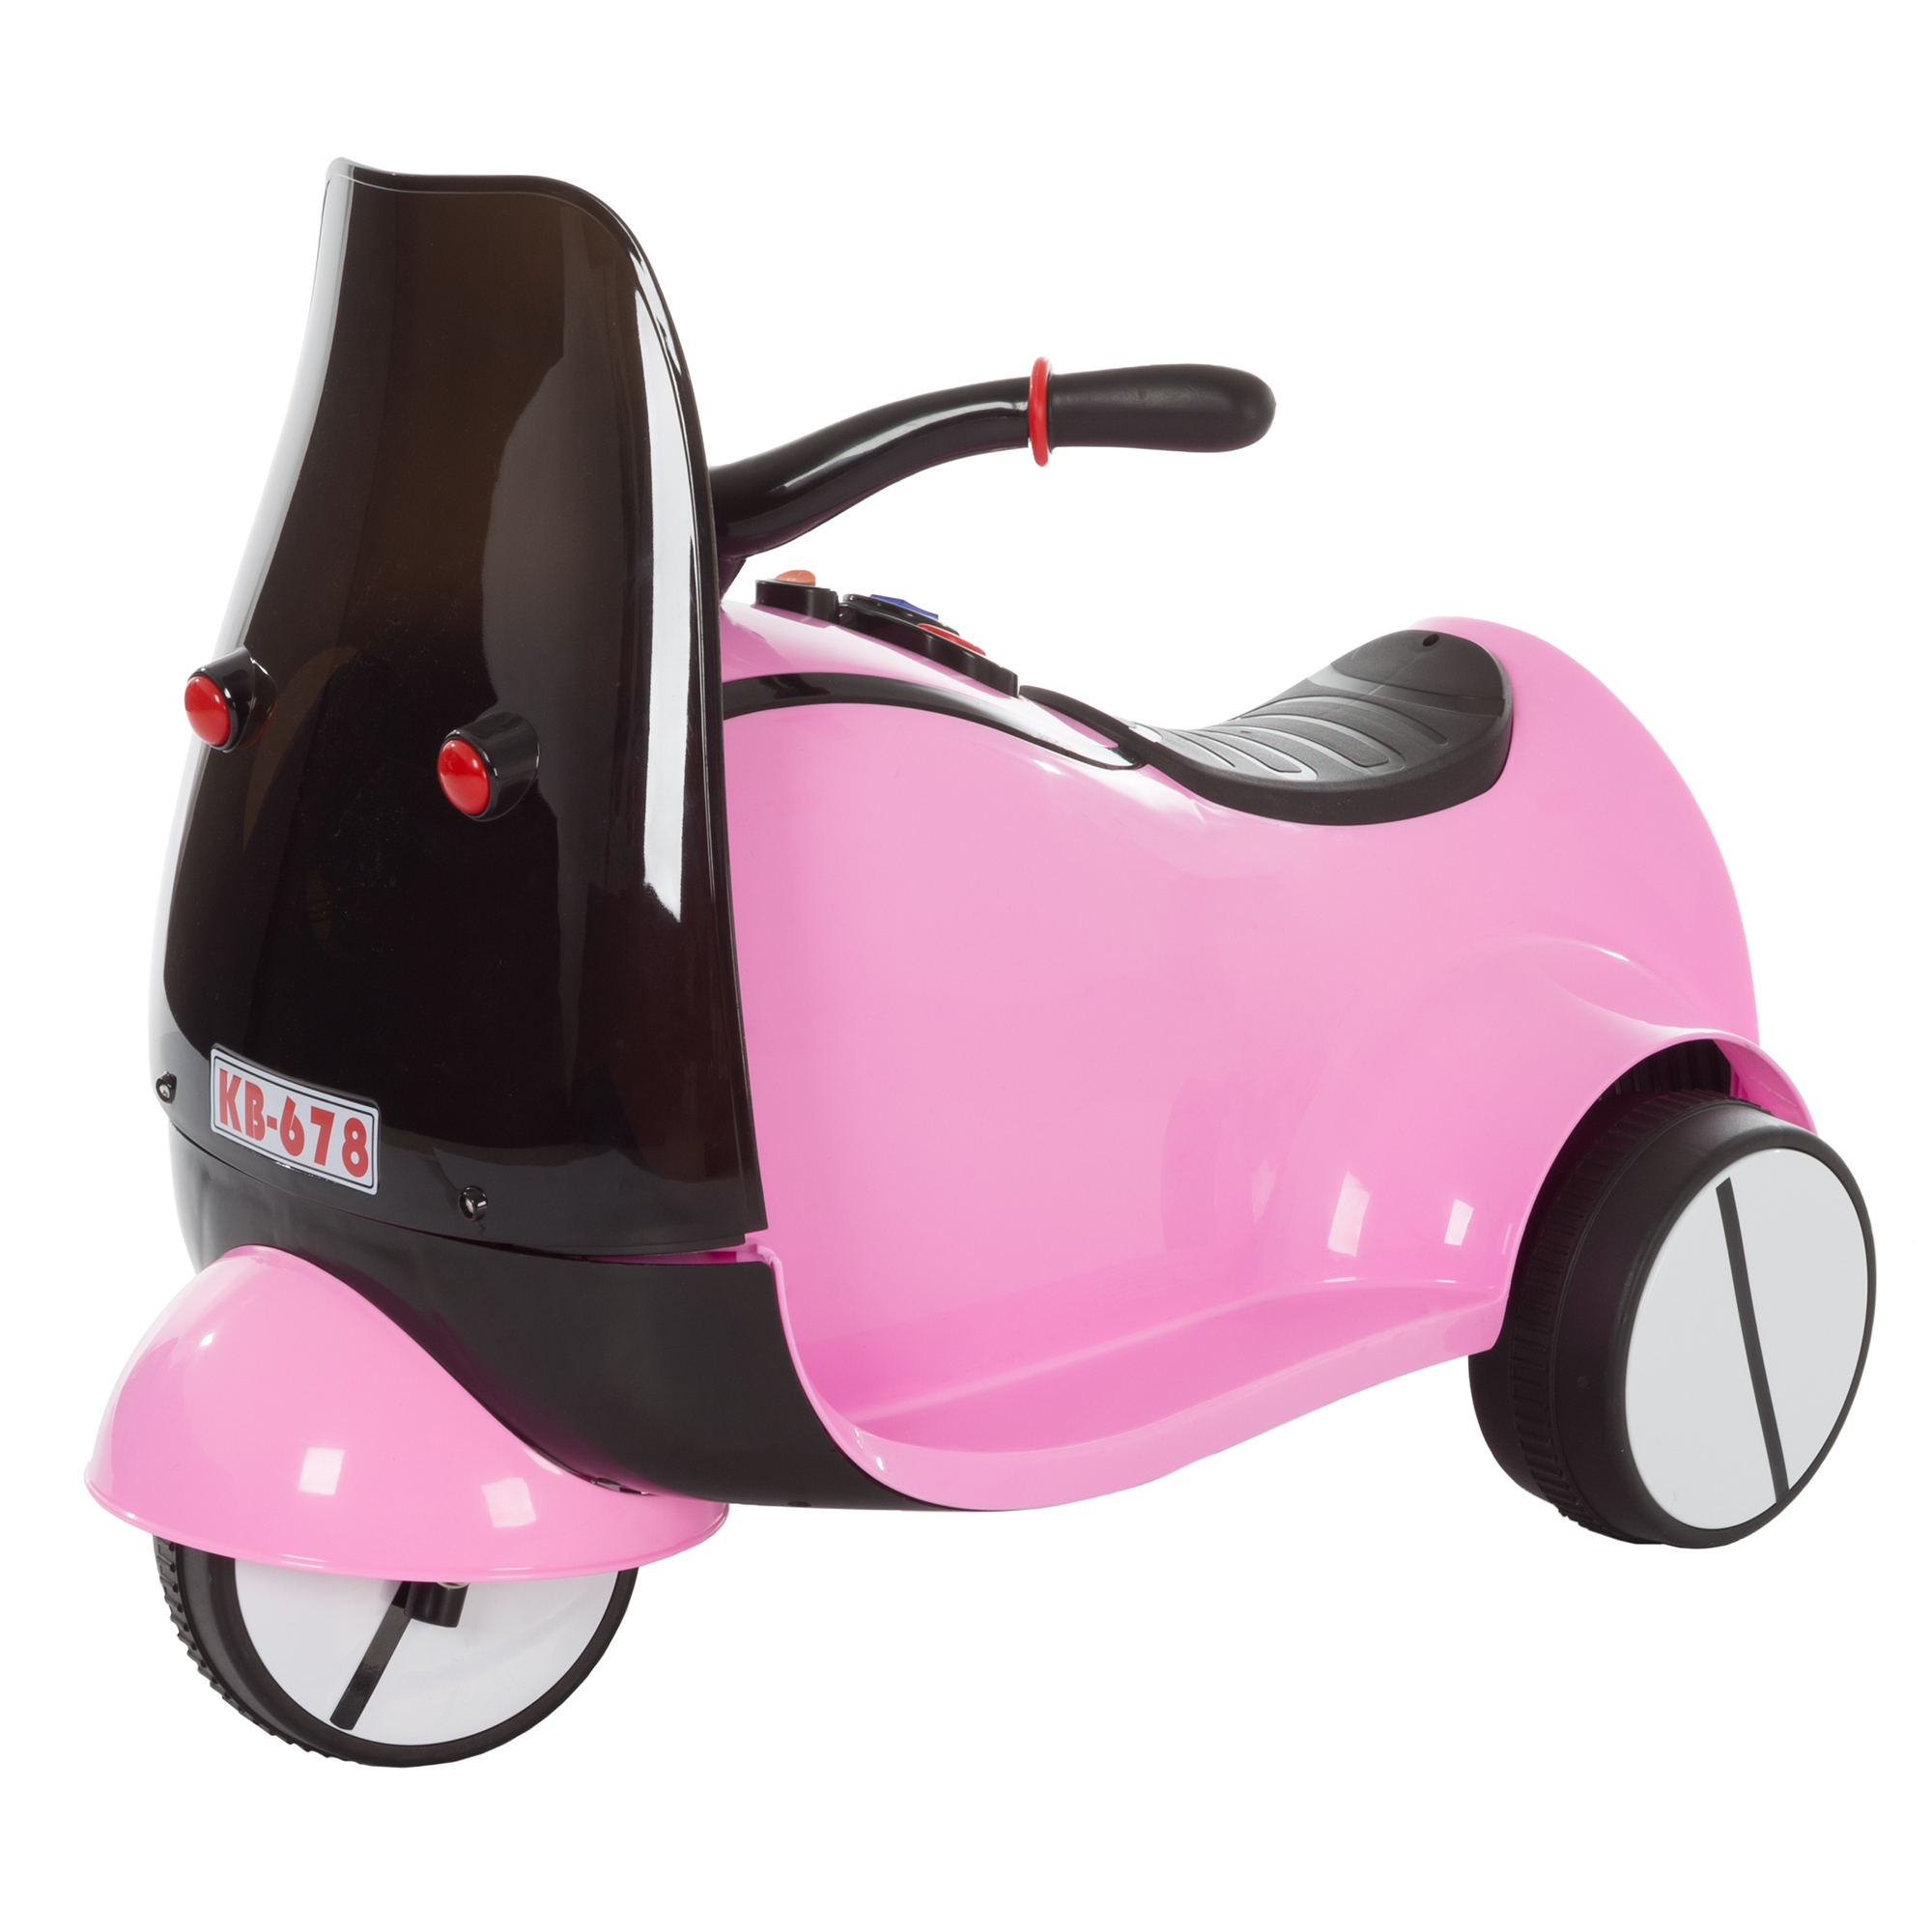 Ride on Toy, 3 Wheel Motorcycle Euro Trike for Kids by Hey! Play! Battery Powered Ride-on... by Trademark Global LLC